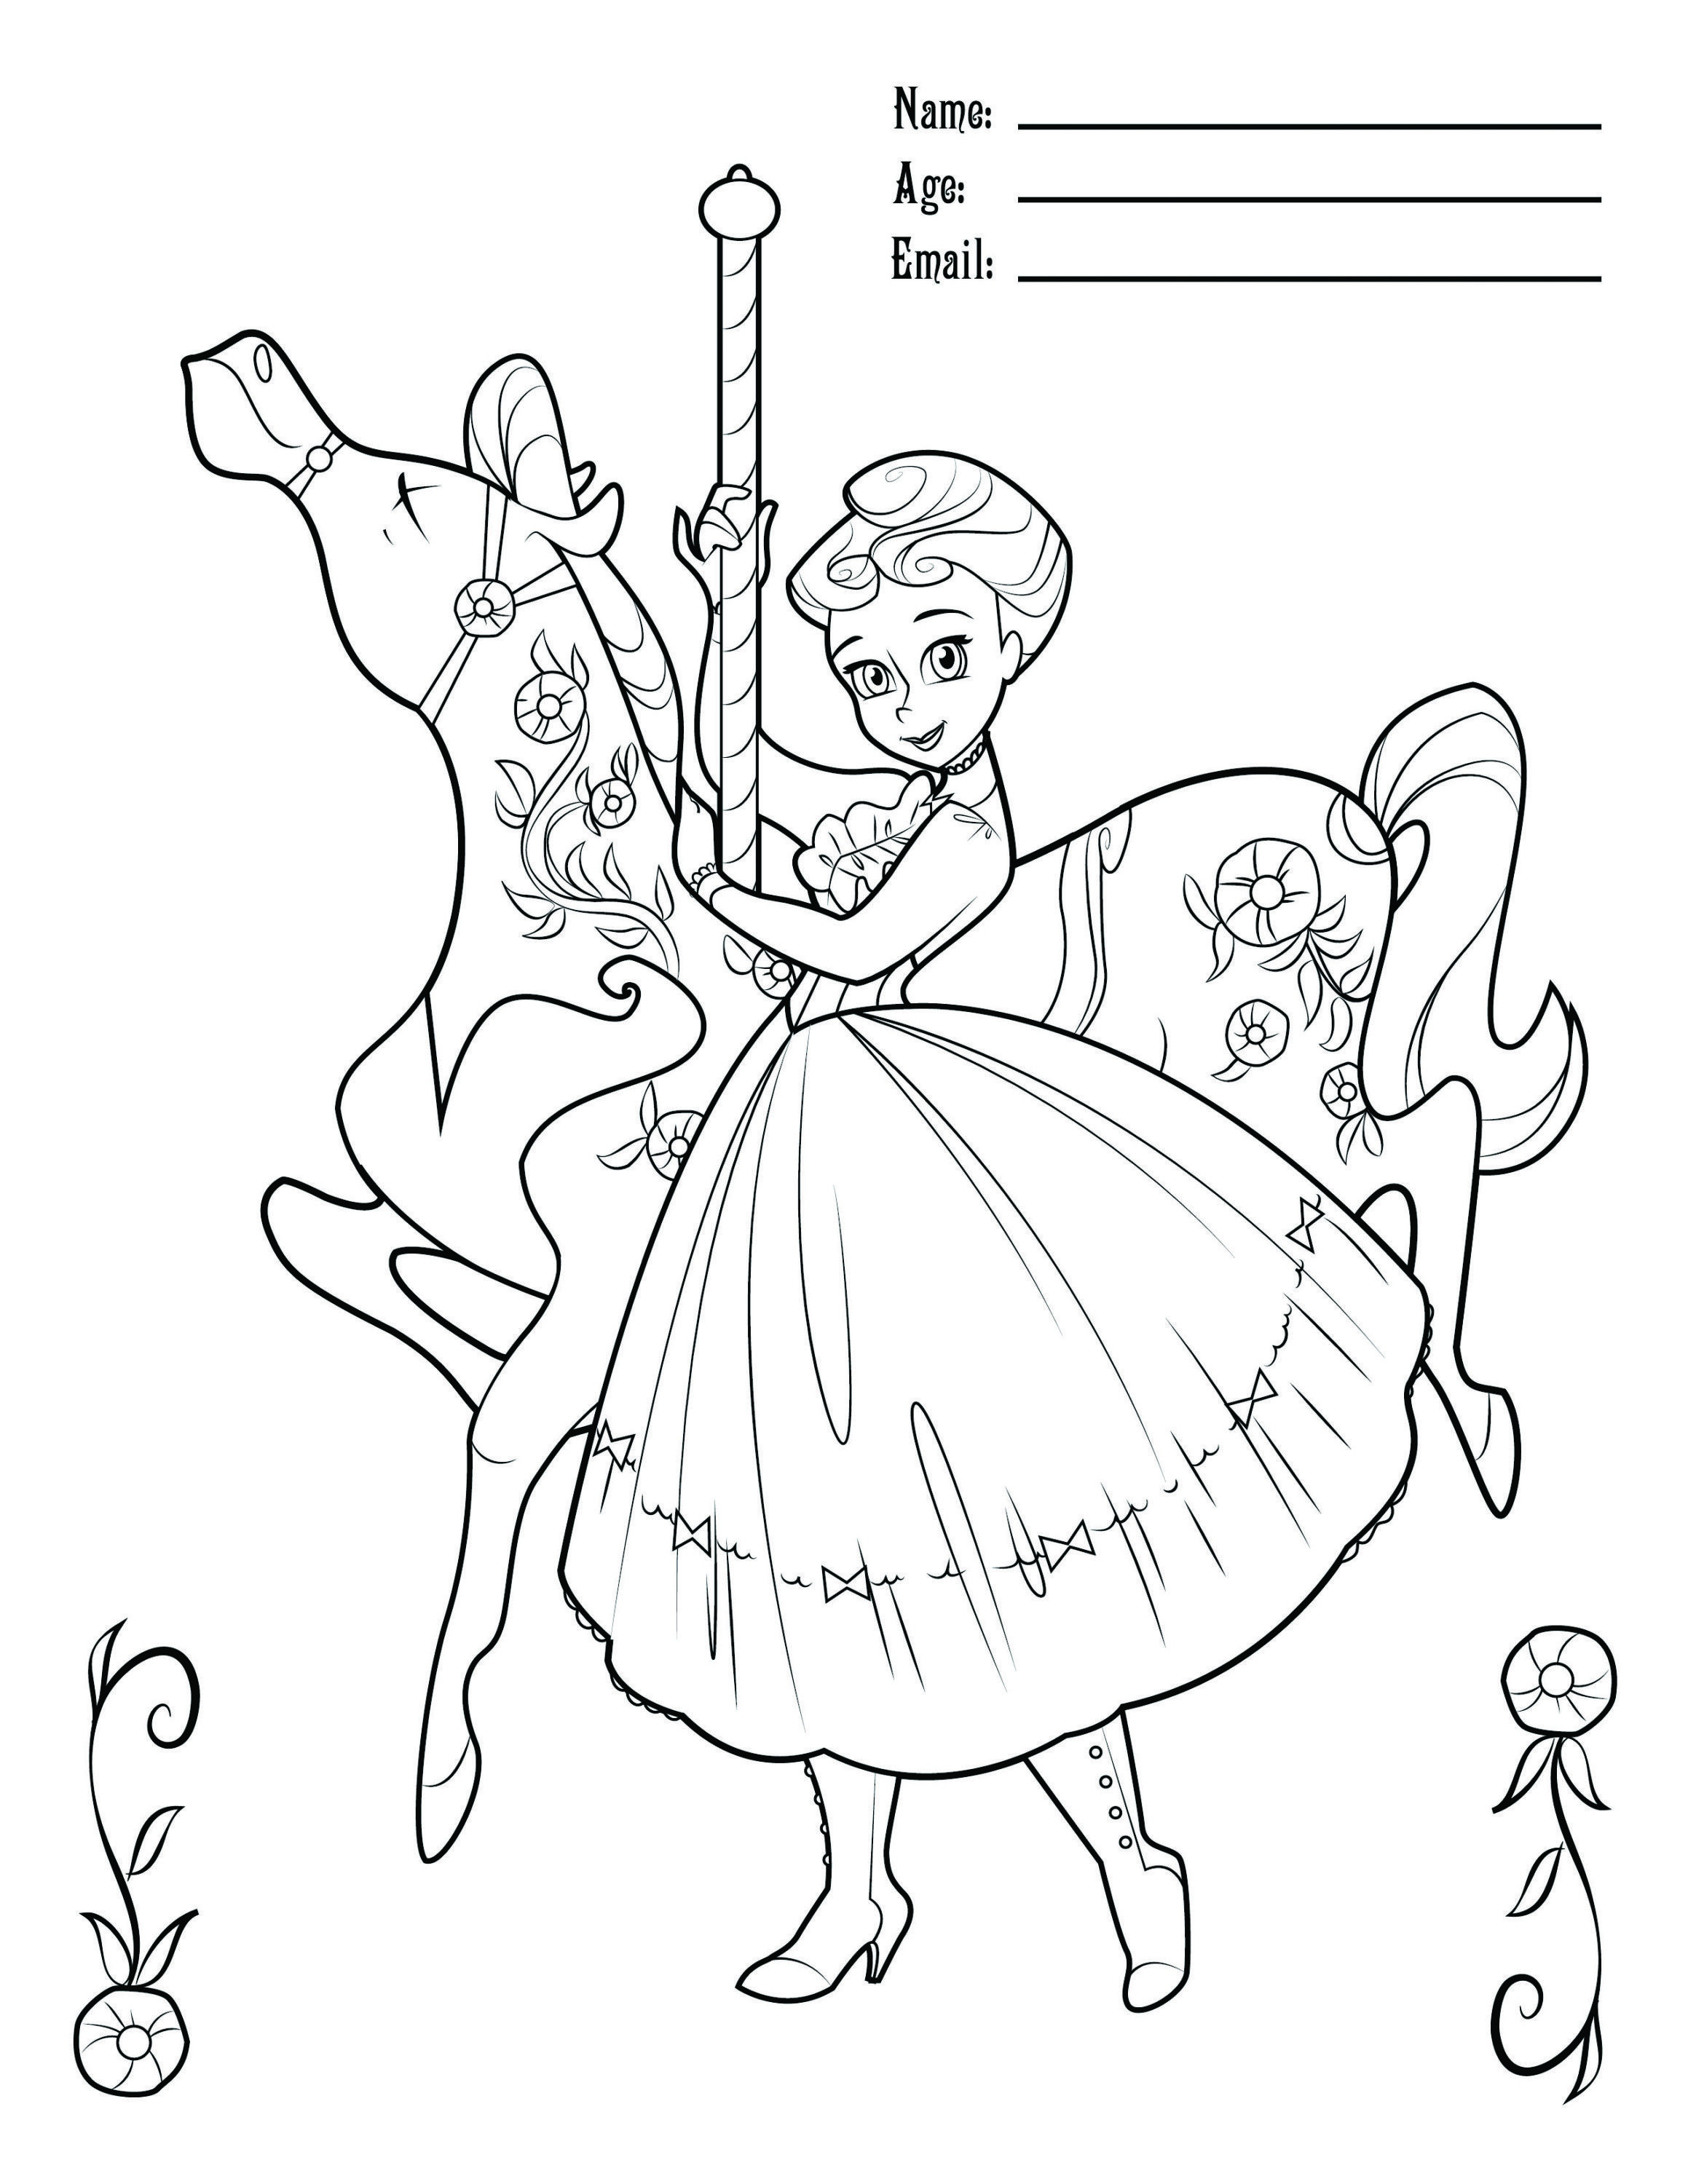 Carousel Coloring Contest